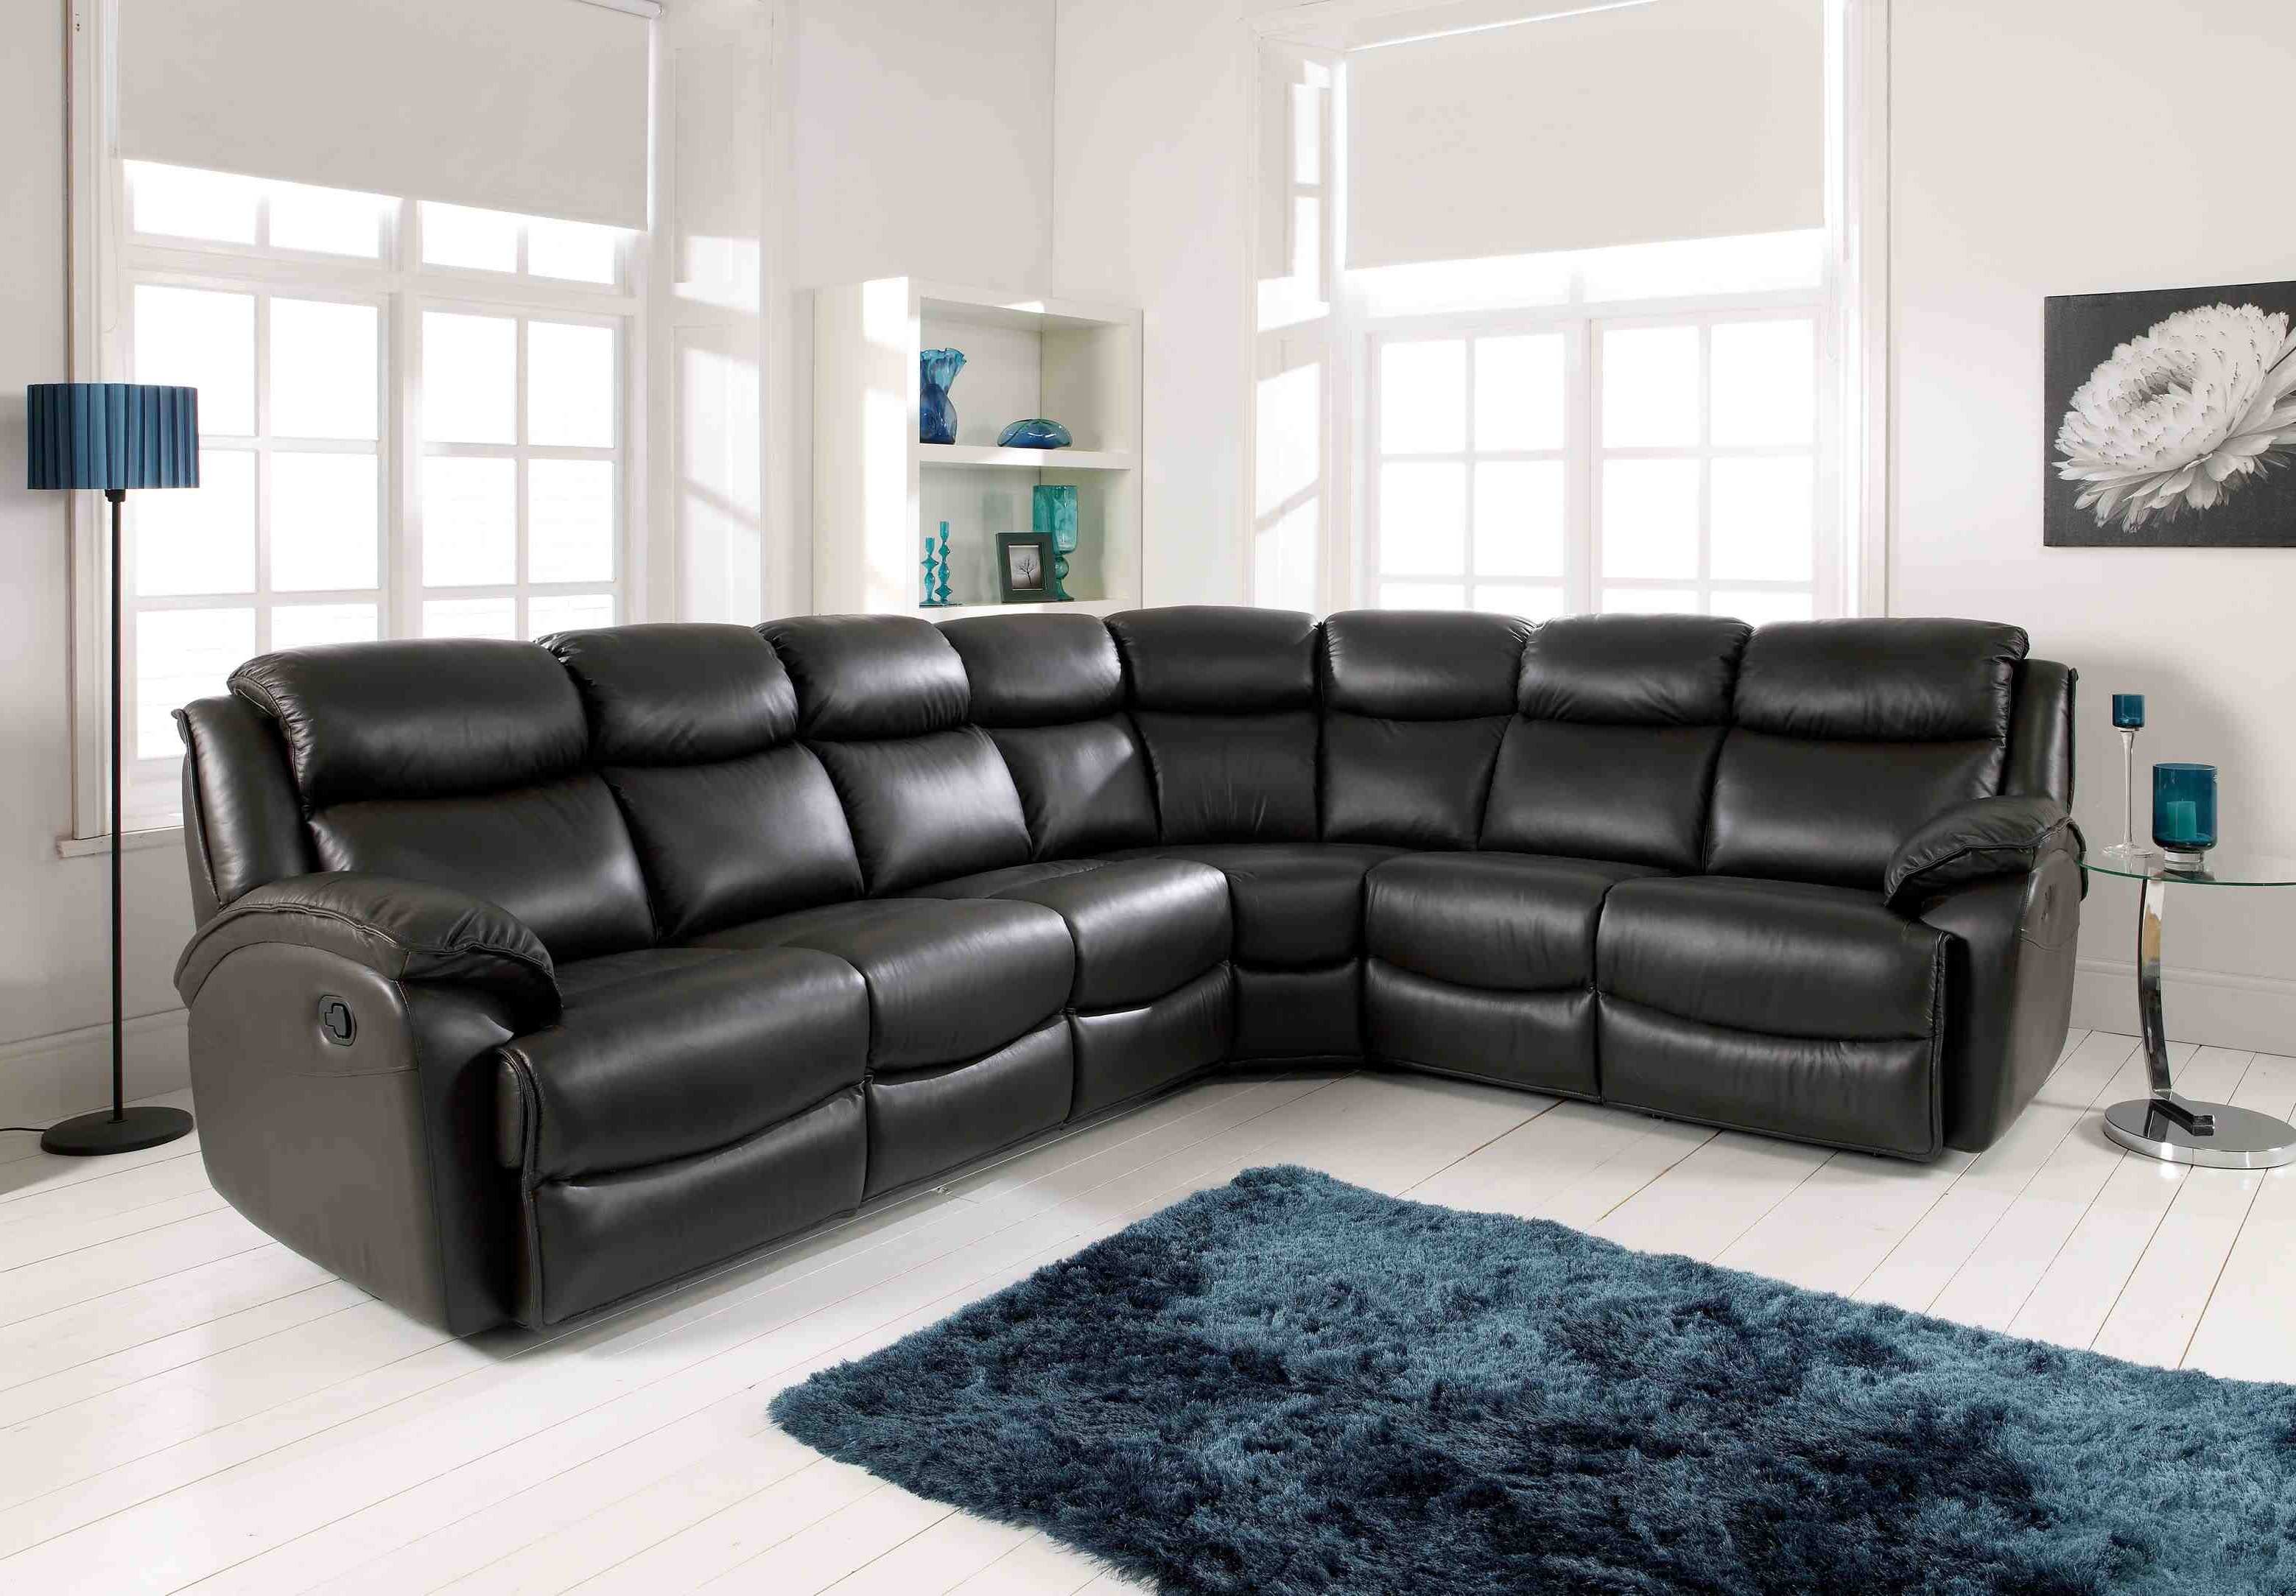 Popular Recliners Chairs & Sofa : Sectional Best Leather Furniture Brands With Regard To High Quality Sectional Sofas (View 13 of 15)